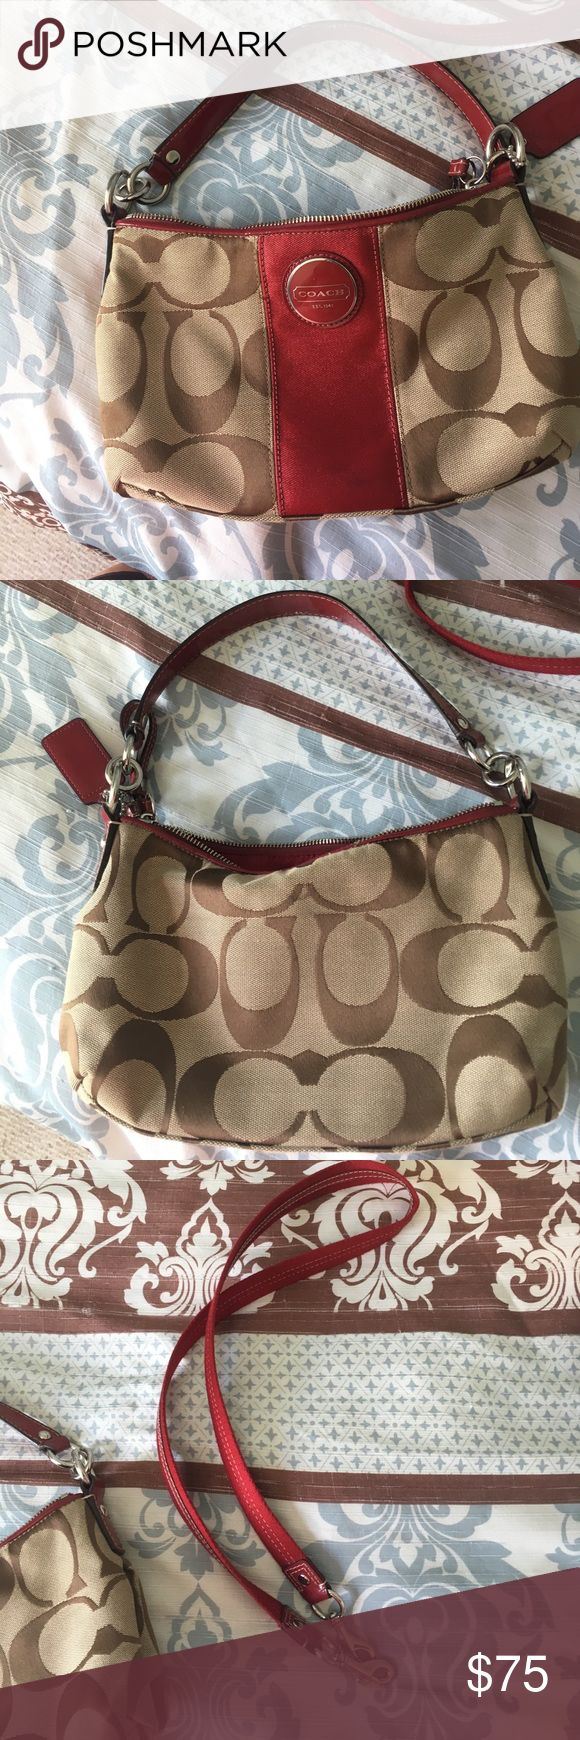 Coach pocketbook a coach bag, used two times in very good condition and comes with an attachable strap. Coach Bags Mini Bags